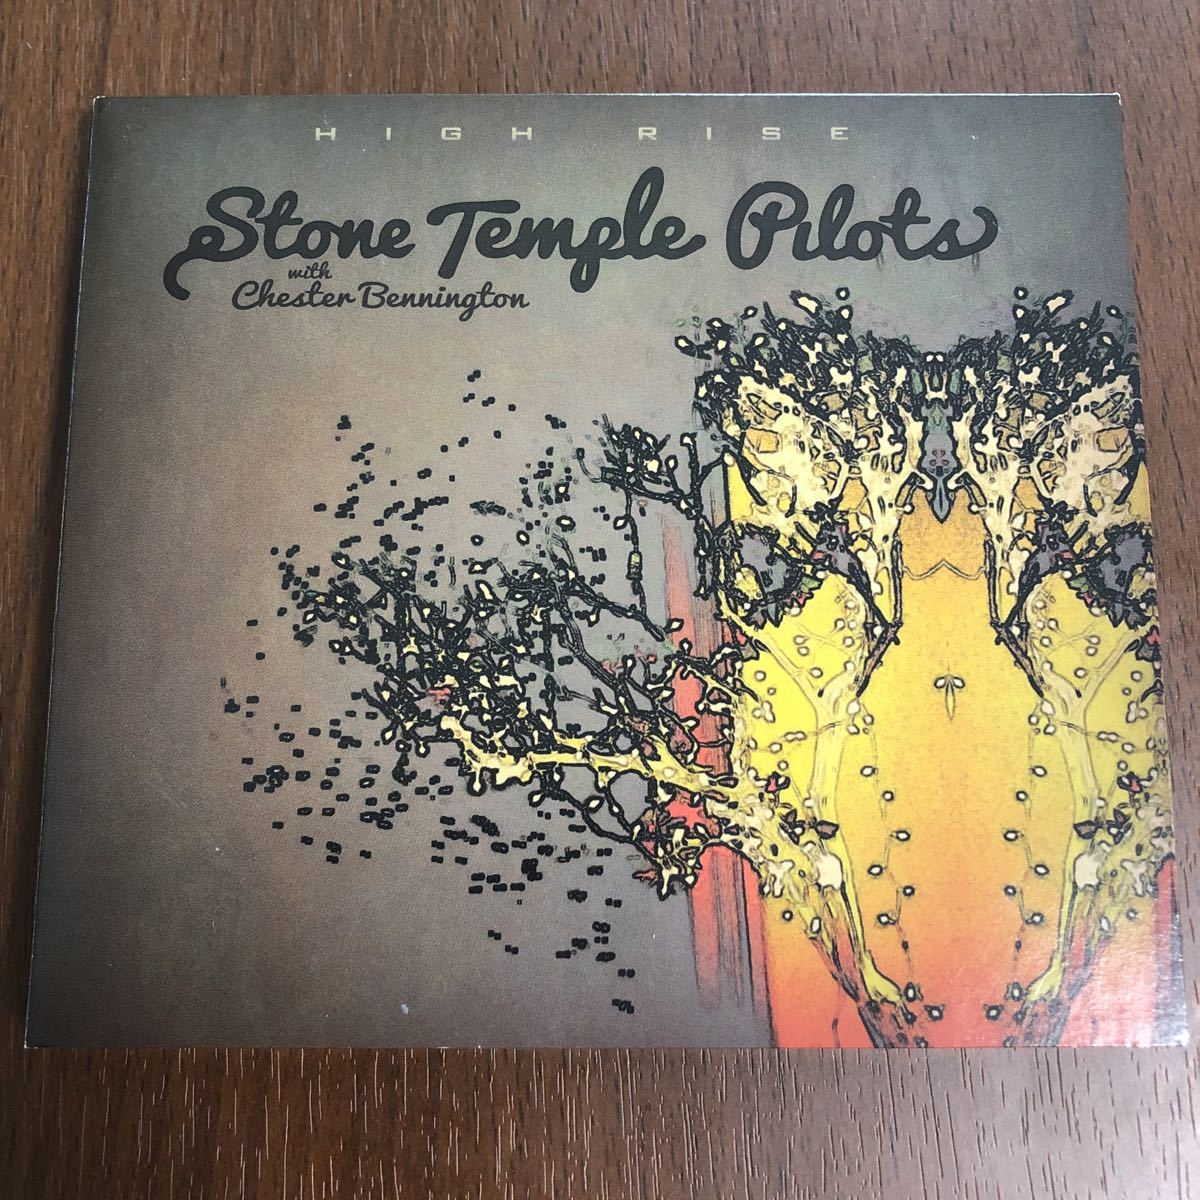 【SHM-CD】ストーン・テンプル・パイロッツ with チェスター (DVD付) Stone Temple Pilots with Cheater Bennington リンキン Linkin Park